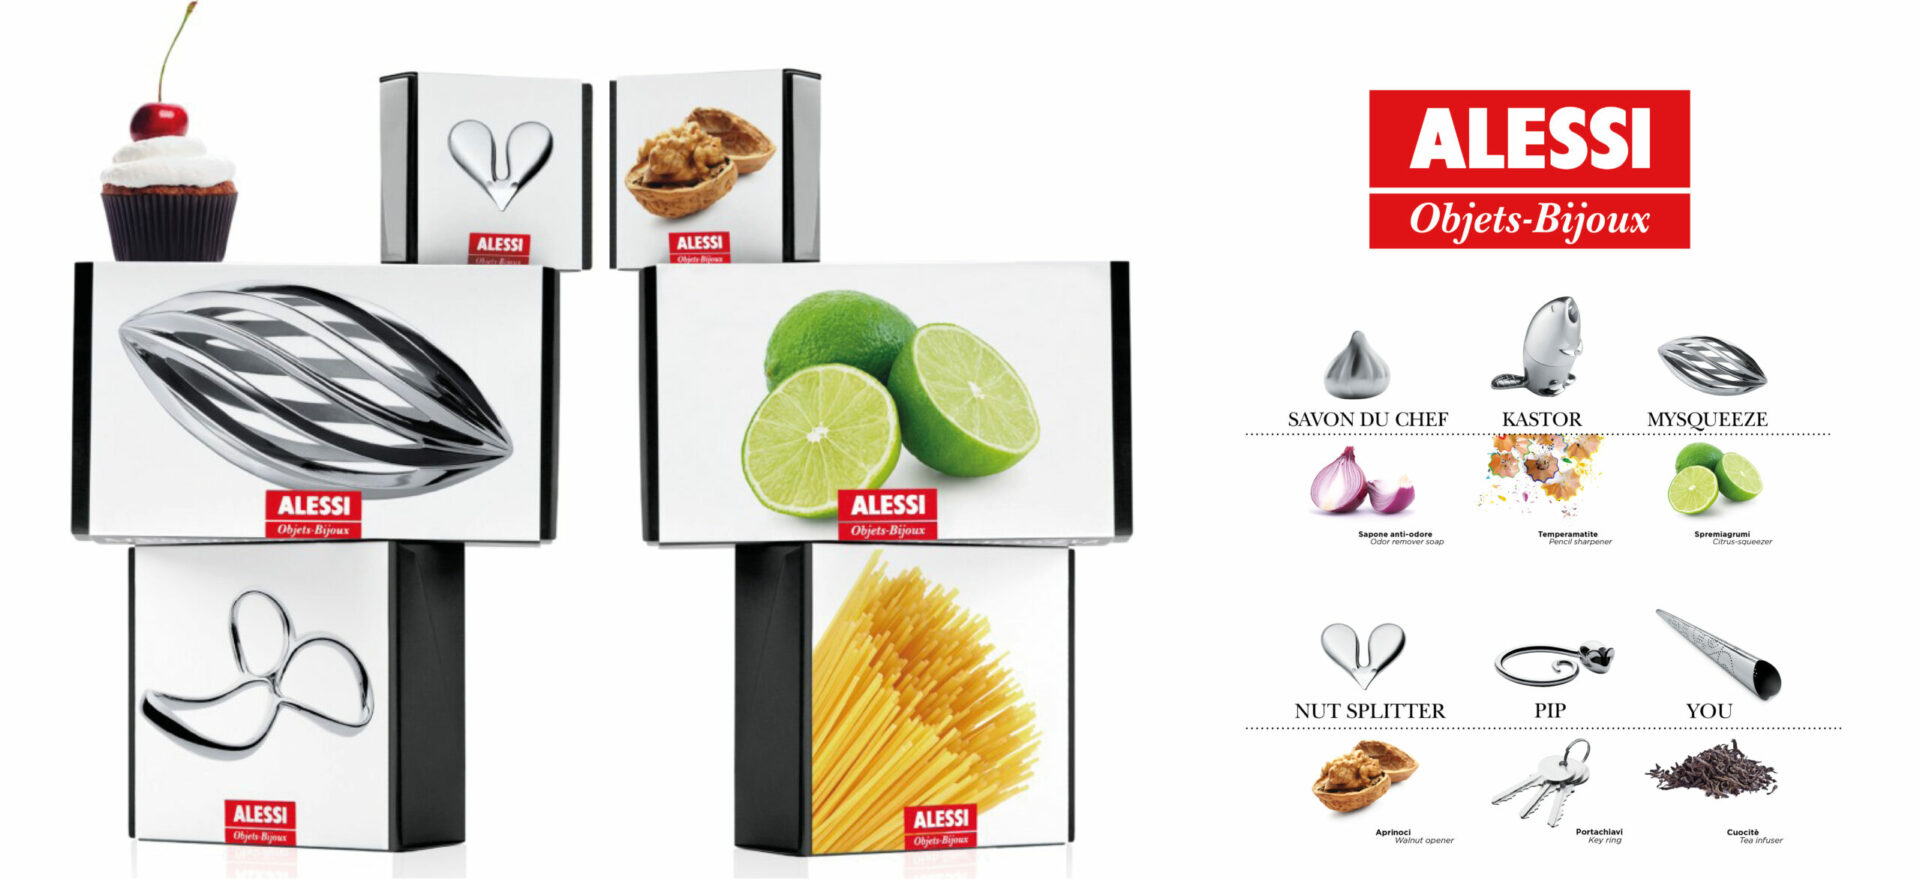 Objects-Bijoux packaging showed in a vertical composition of boxes of diverse products for Alessi Collection detailing logos and images selected for the packaging in a white background. On the right side a picture of the front of the boxes is shown.